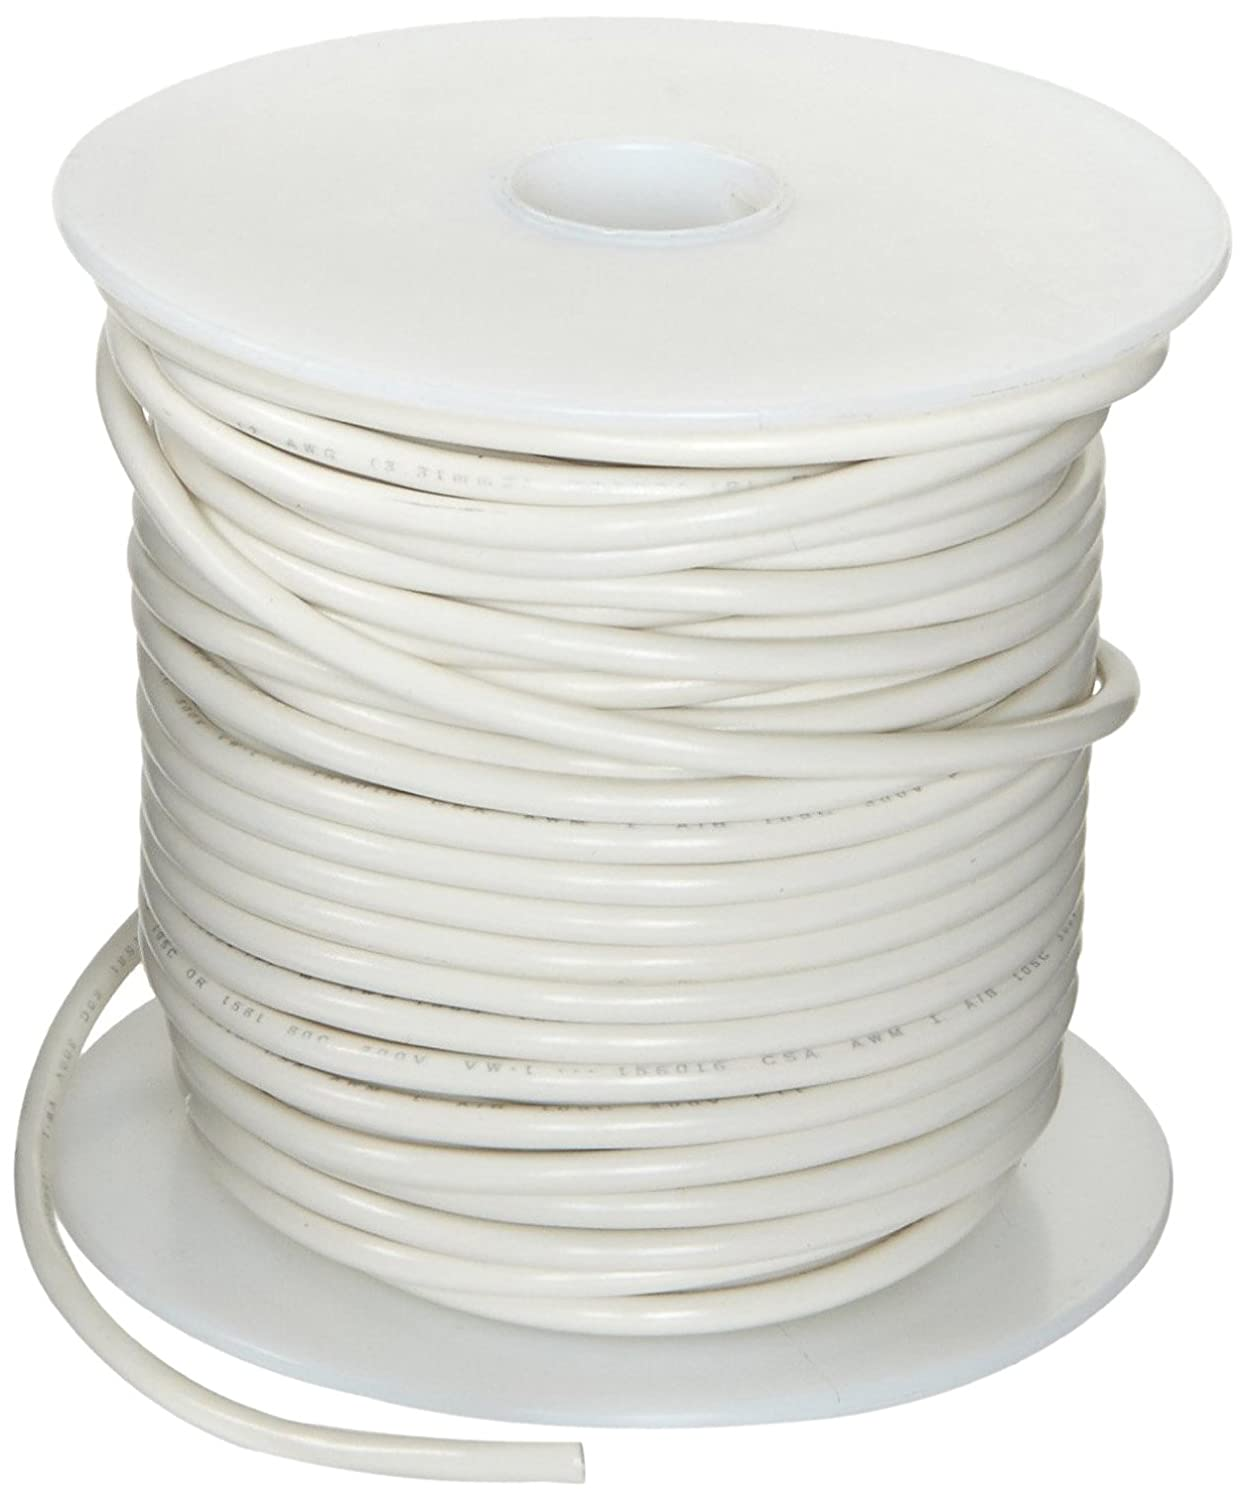 UL1061 Commercial Copper Wire, Bright, White, 14 AWG, 0.0641 ...